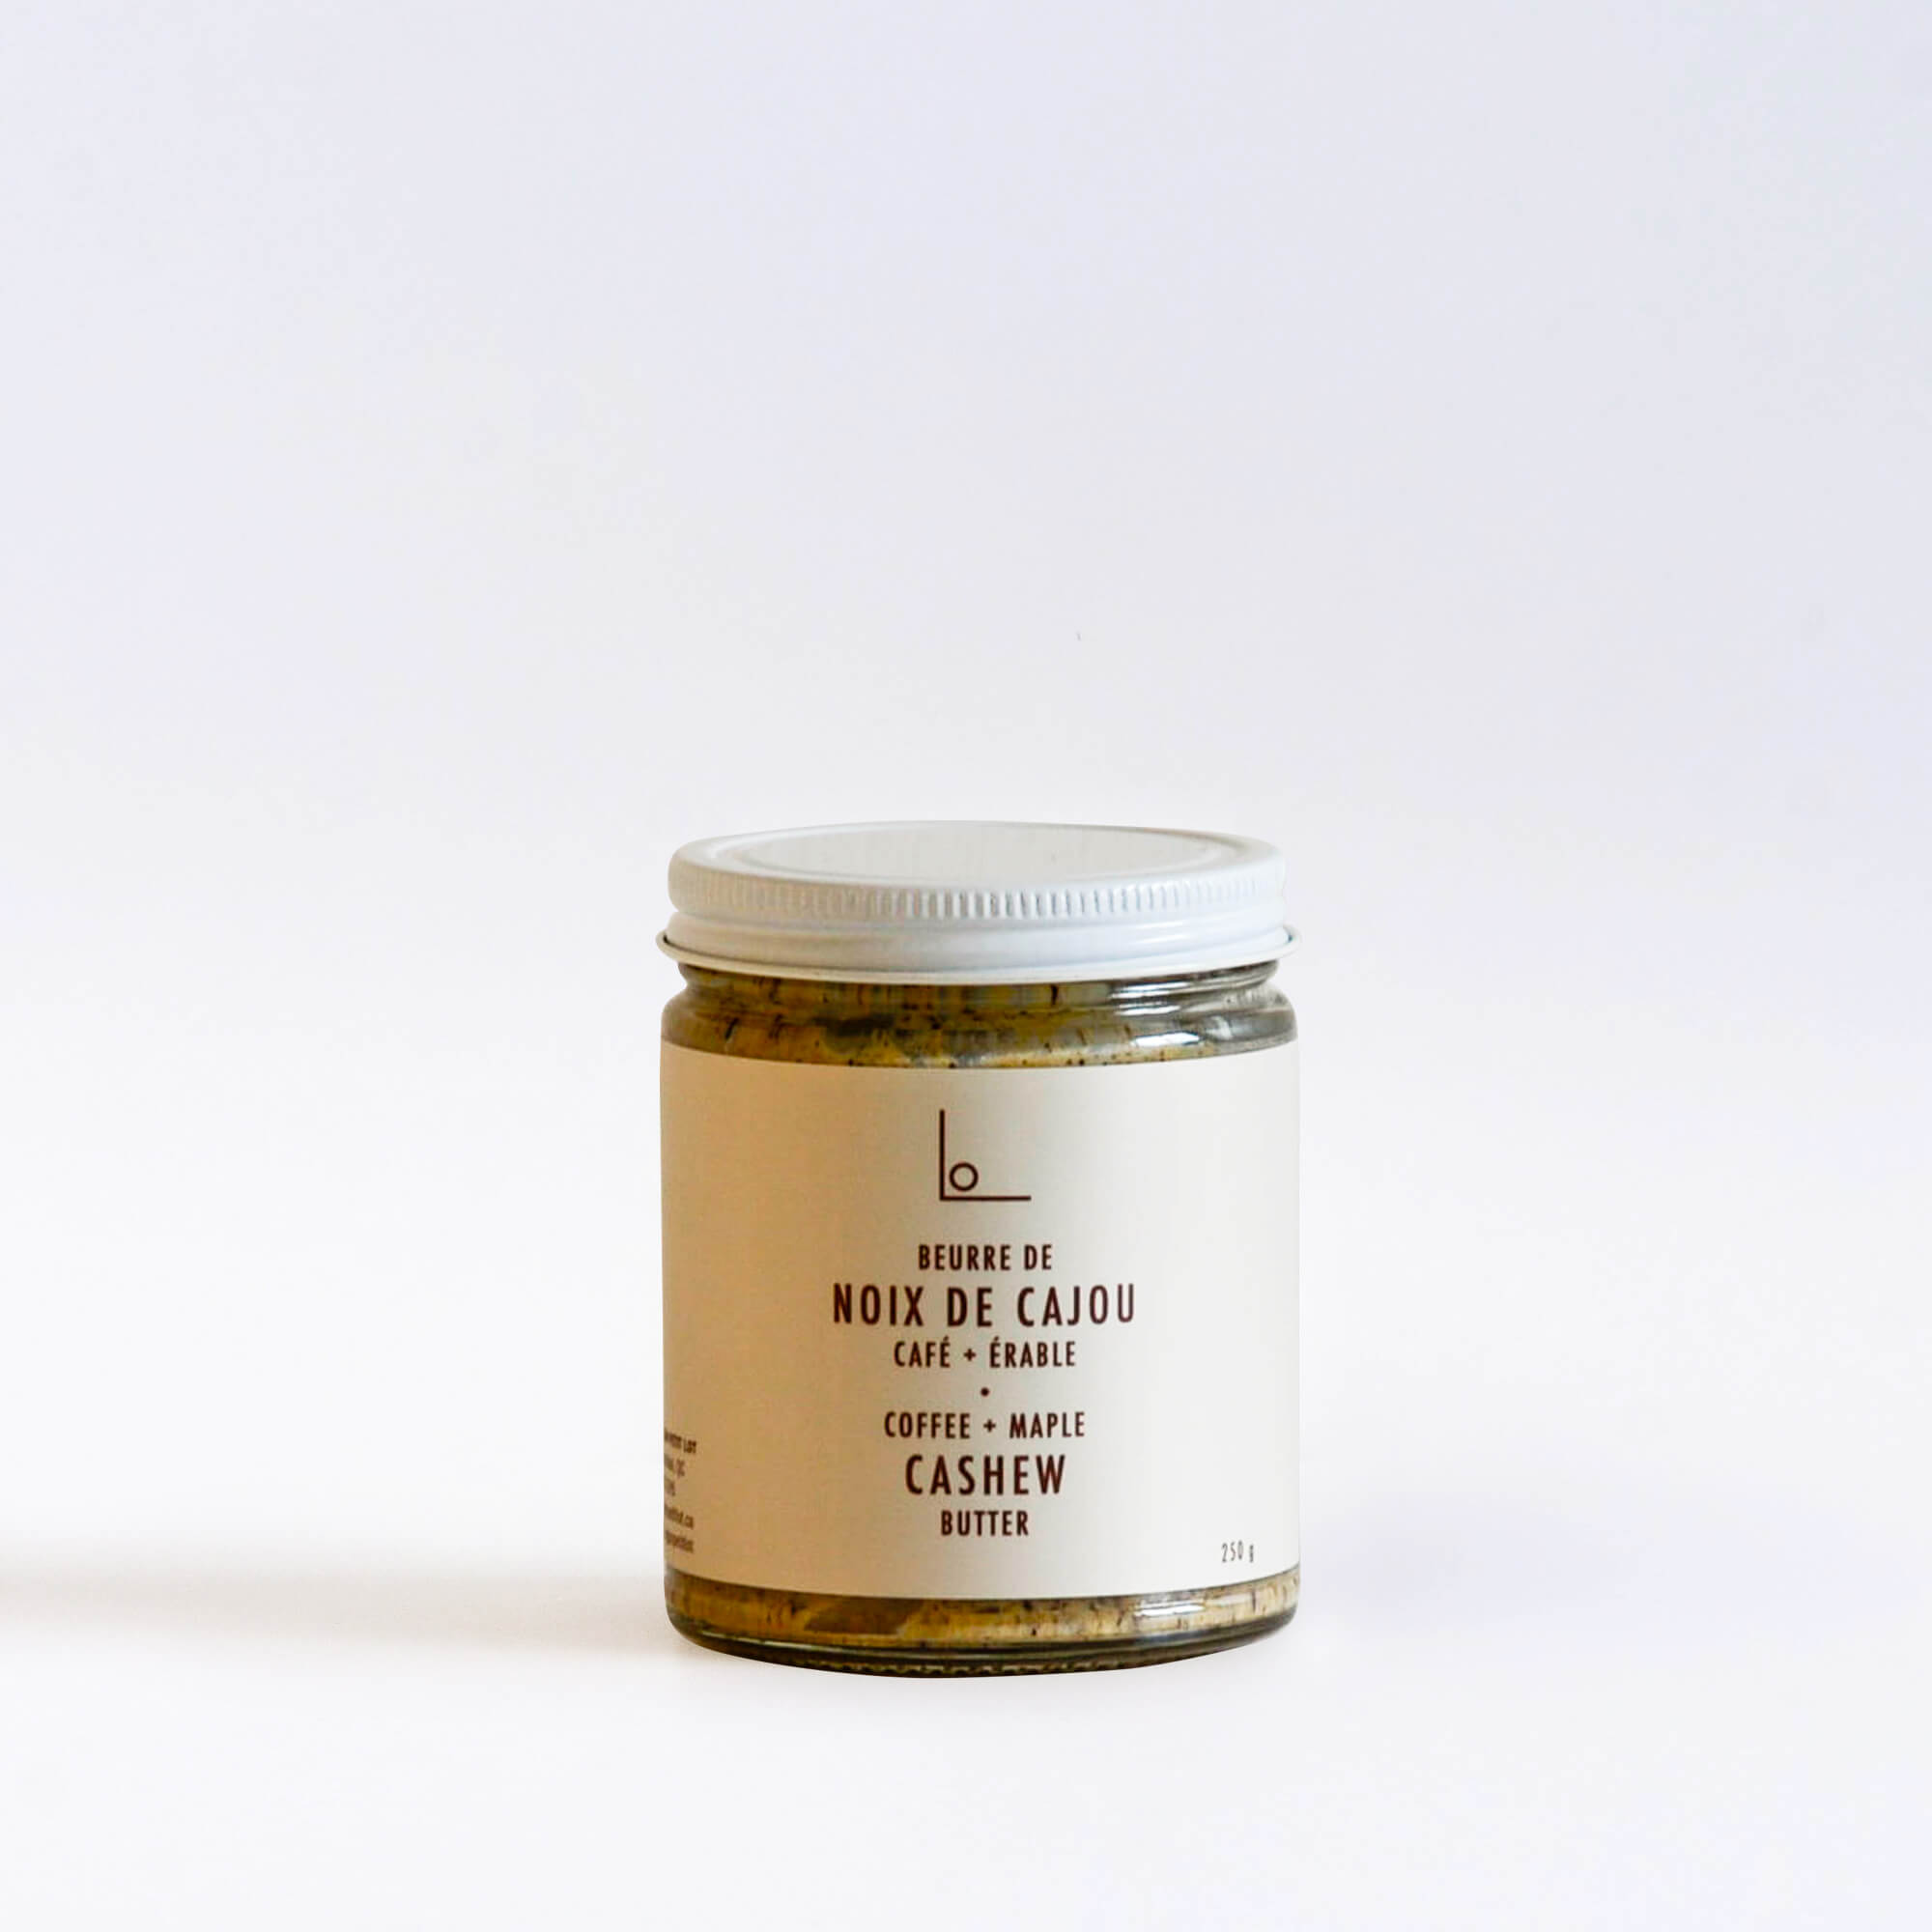 A jar of coffee maple cashew butter from Logan Petit Lot